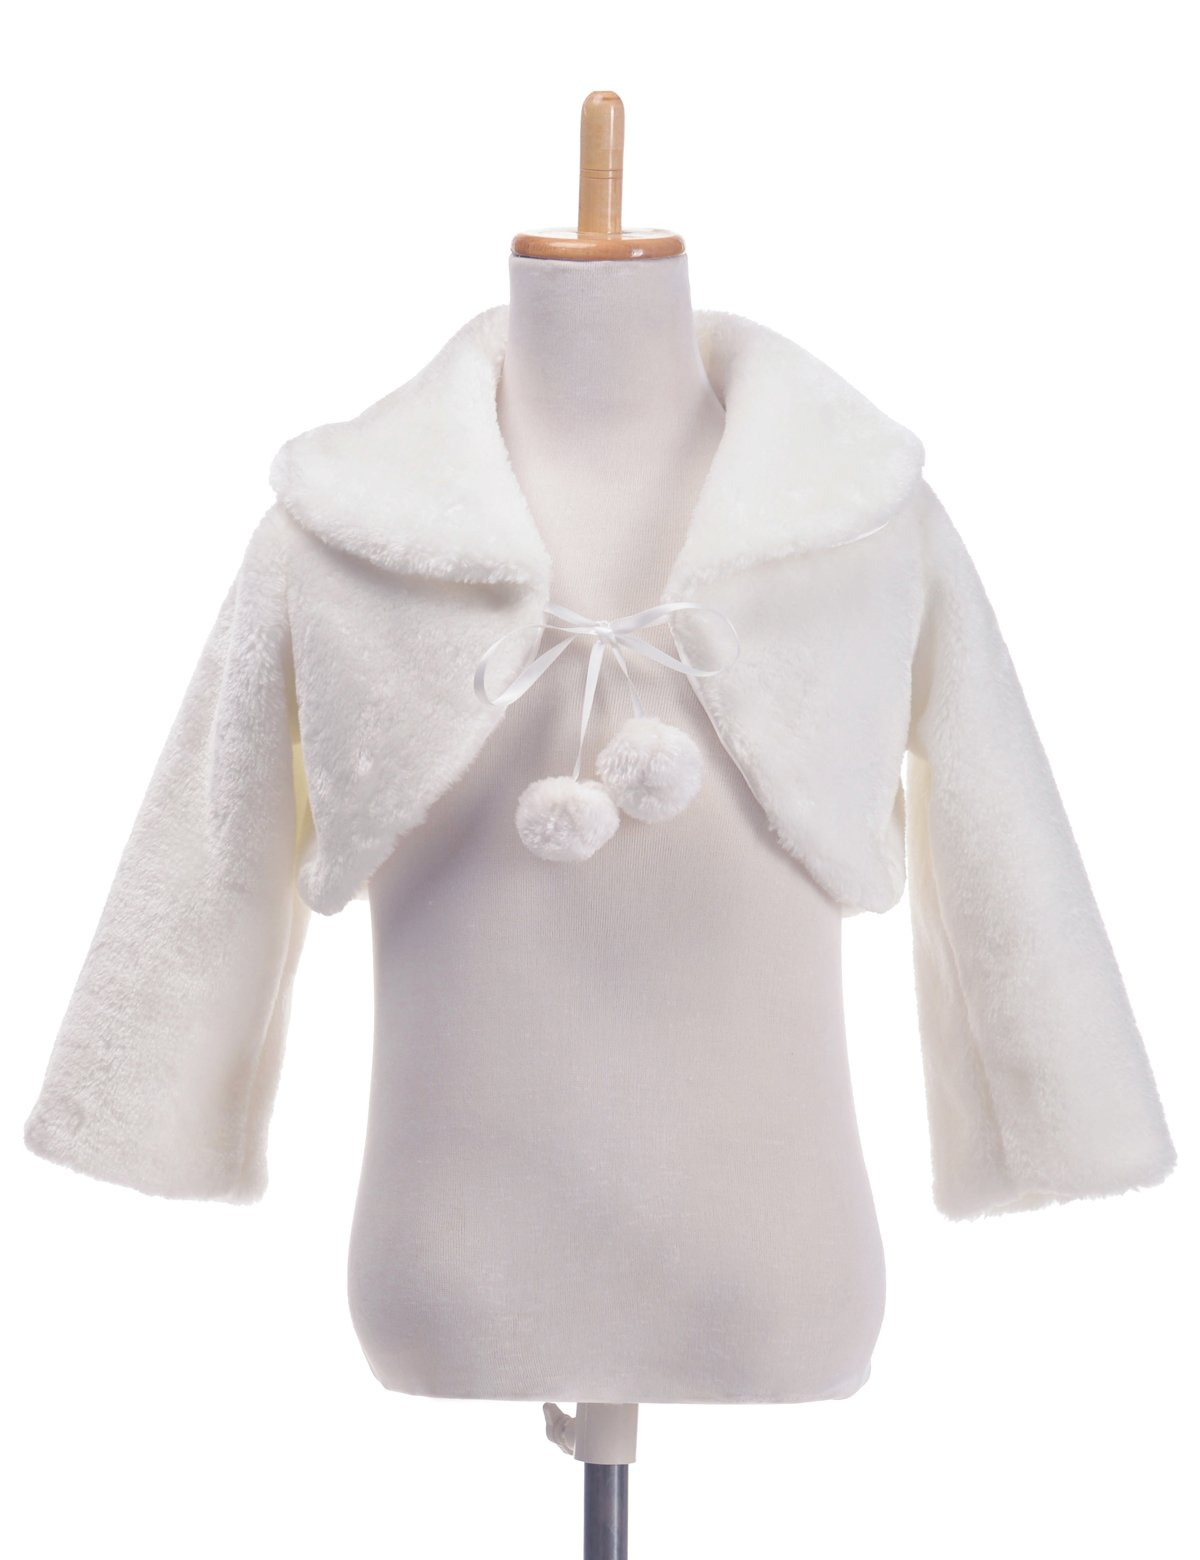 Remedios Flower Girl Long Sleeves Bolero Jacket Wedding Party Wrap Shrug, M by Remedios